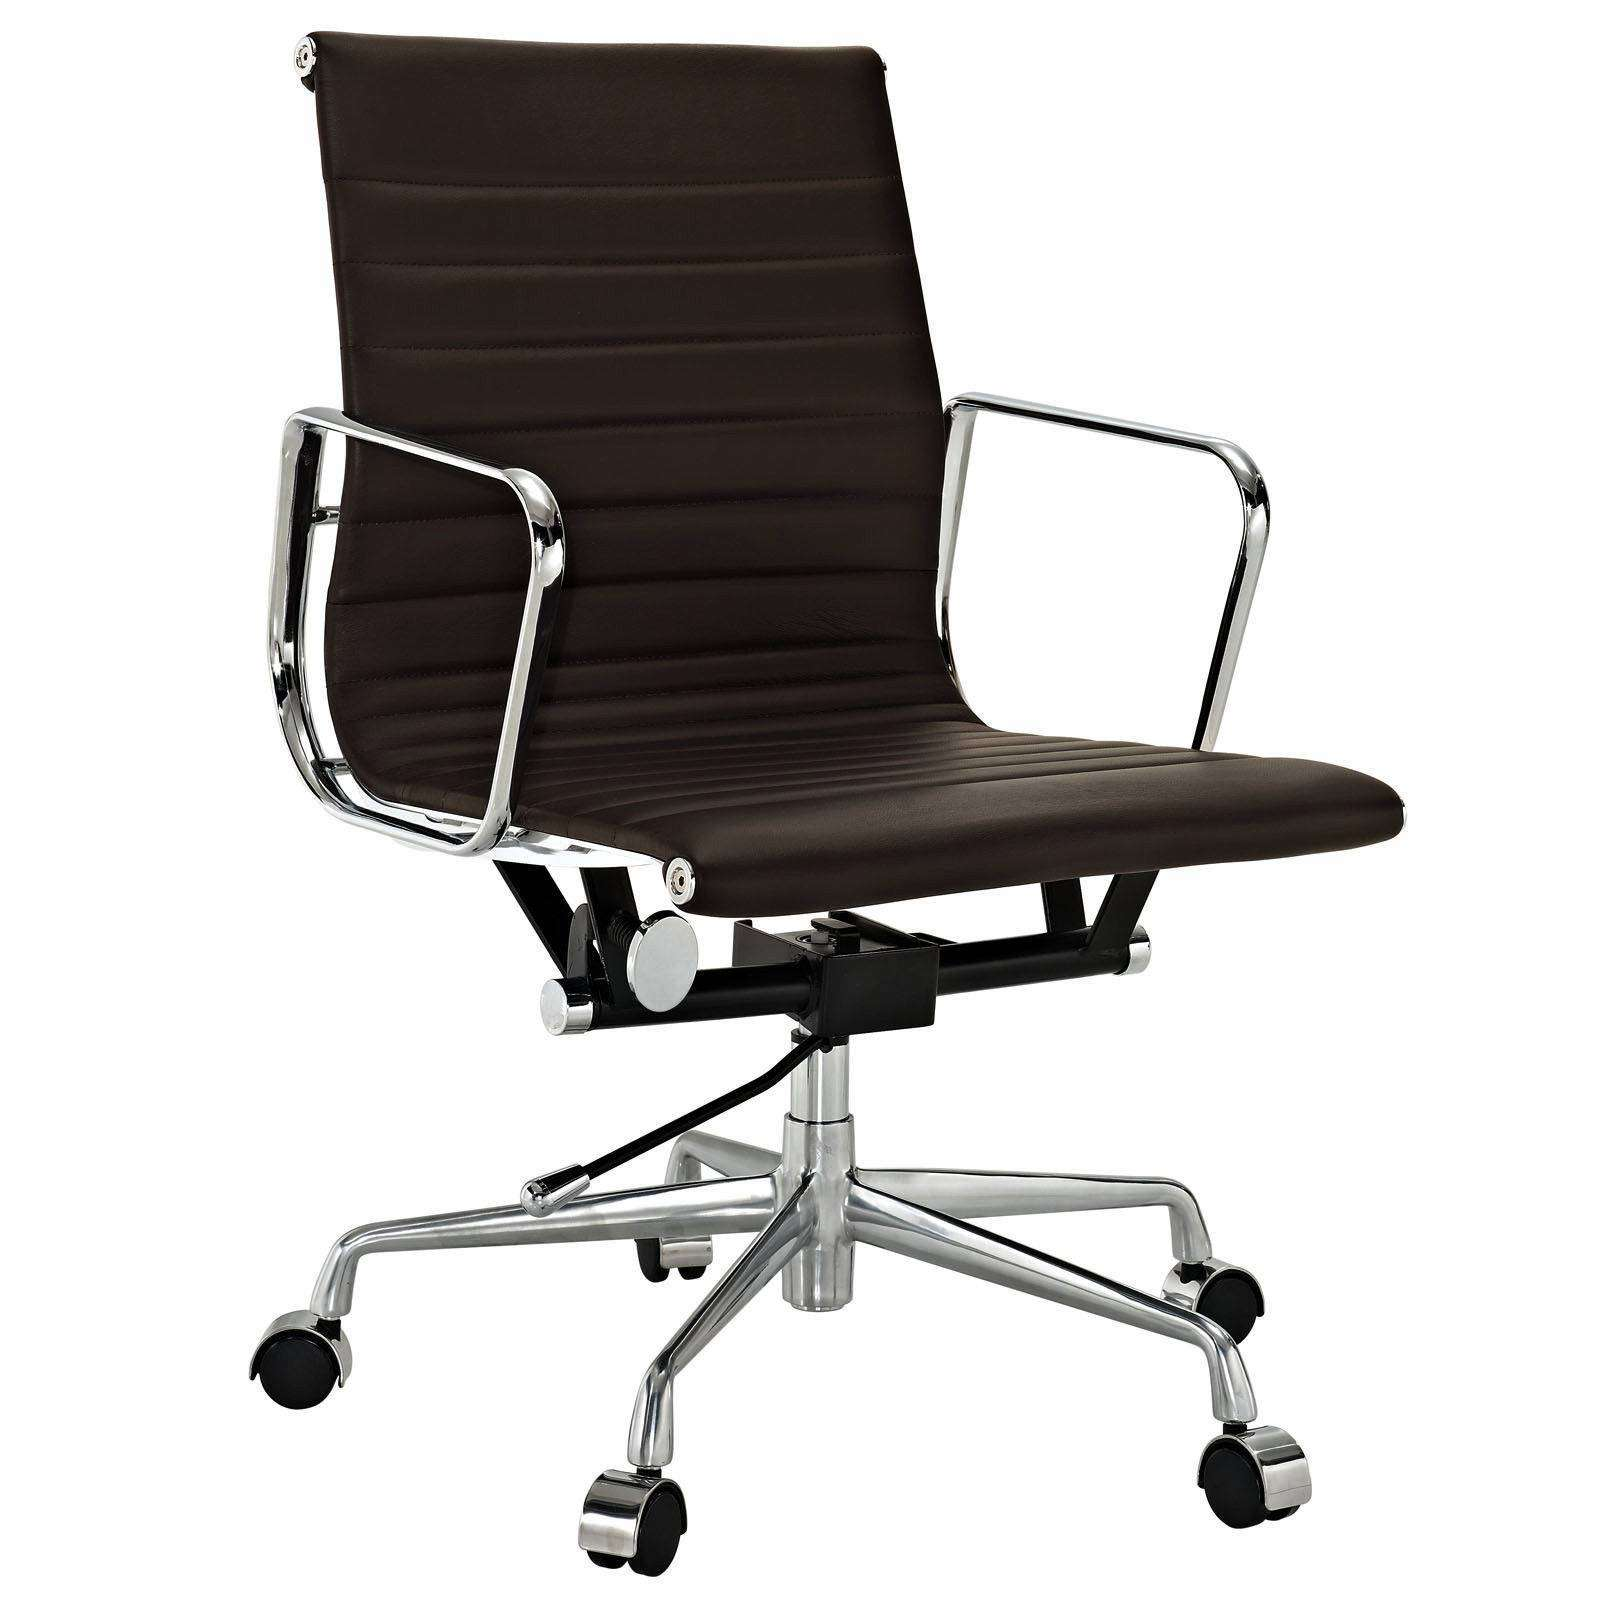 Ribbed Mid Back Office Chair - Aluminum Management Style Office